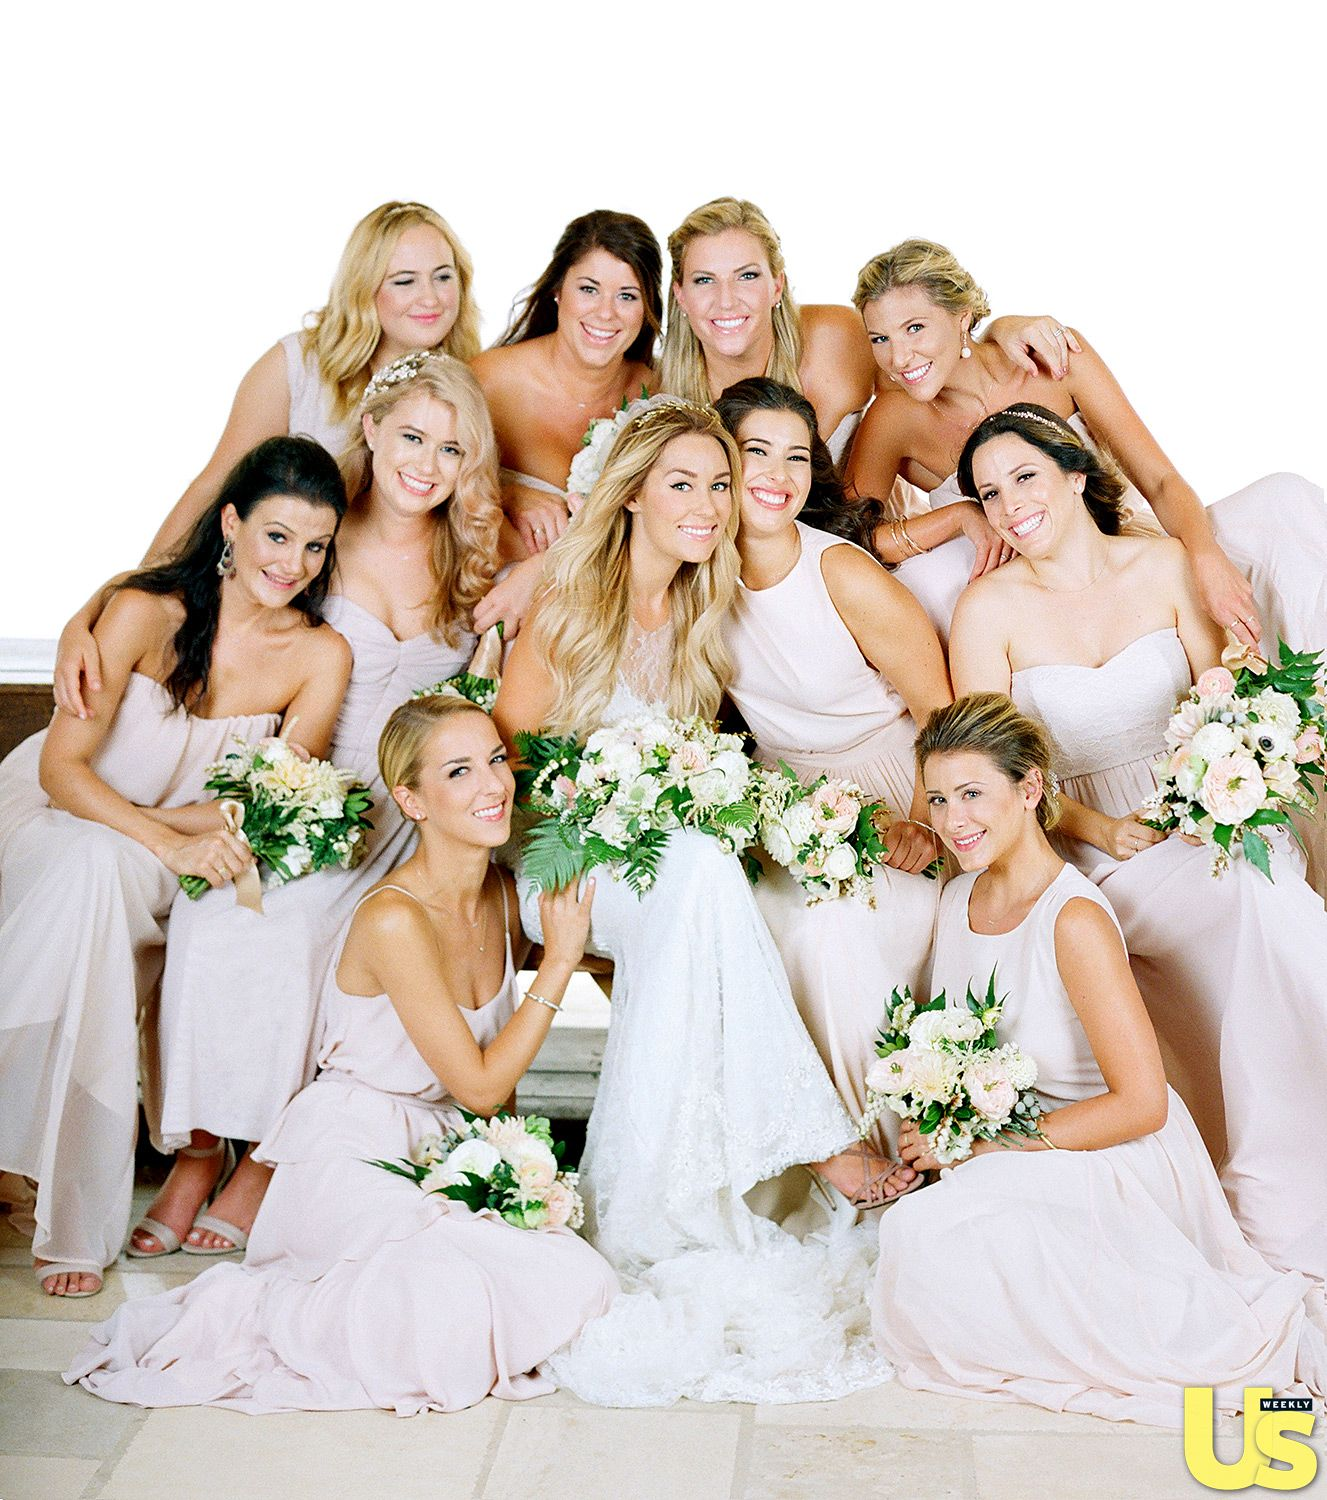 Wedding Bells What I Gave My Bridesmaids Lauren Conrad Bridesmaids Photos Bridal Party Poses Lauren Conrad Wedding